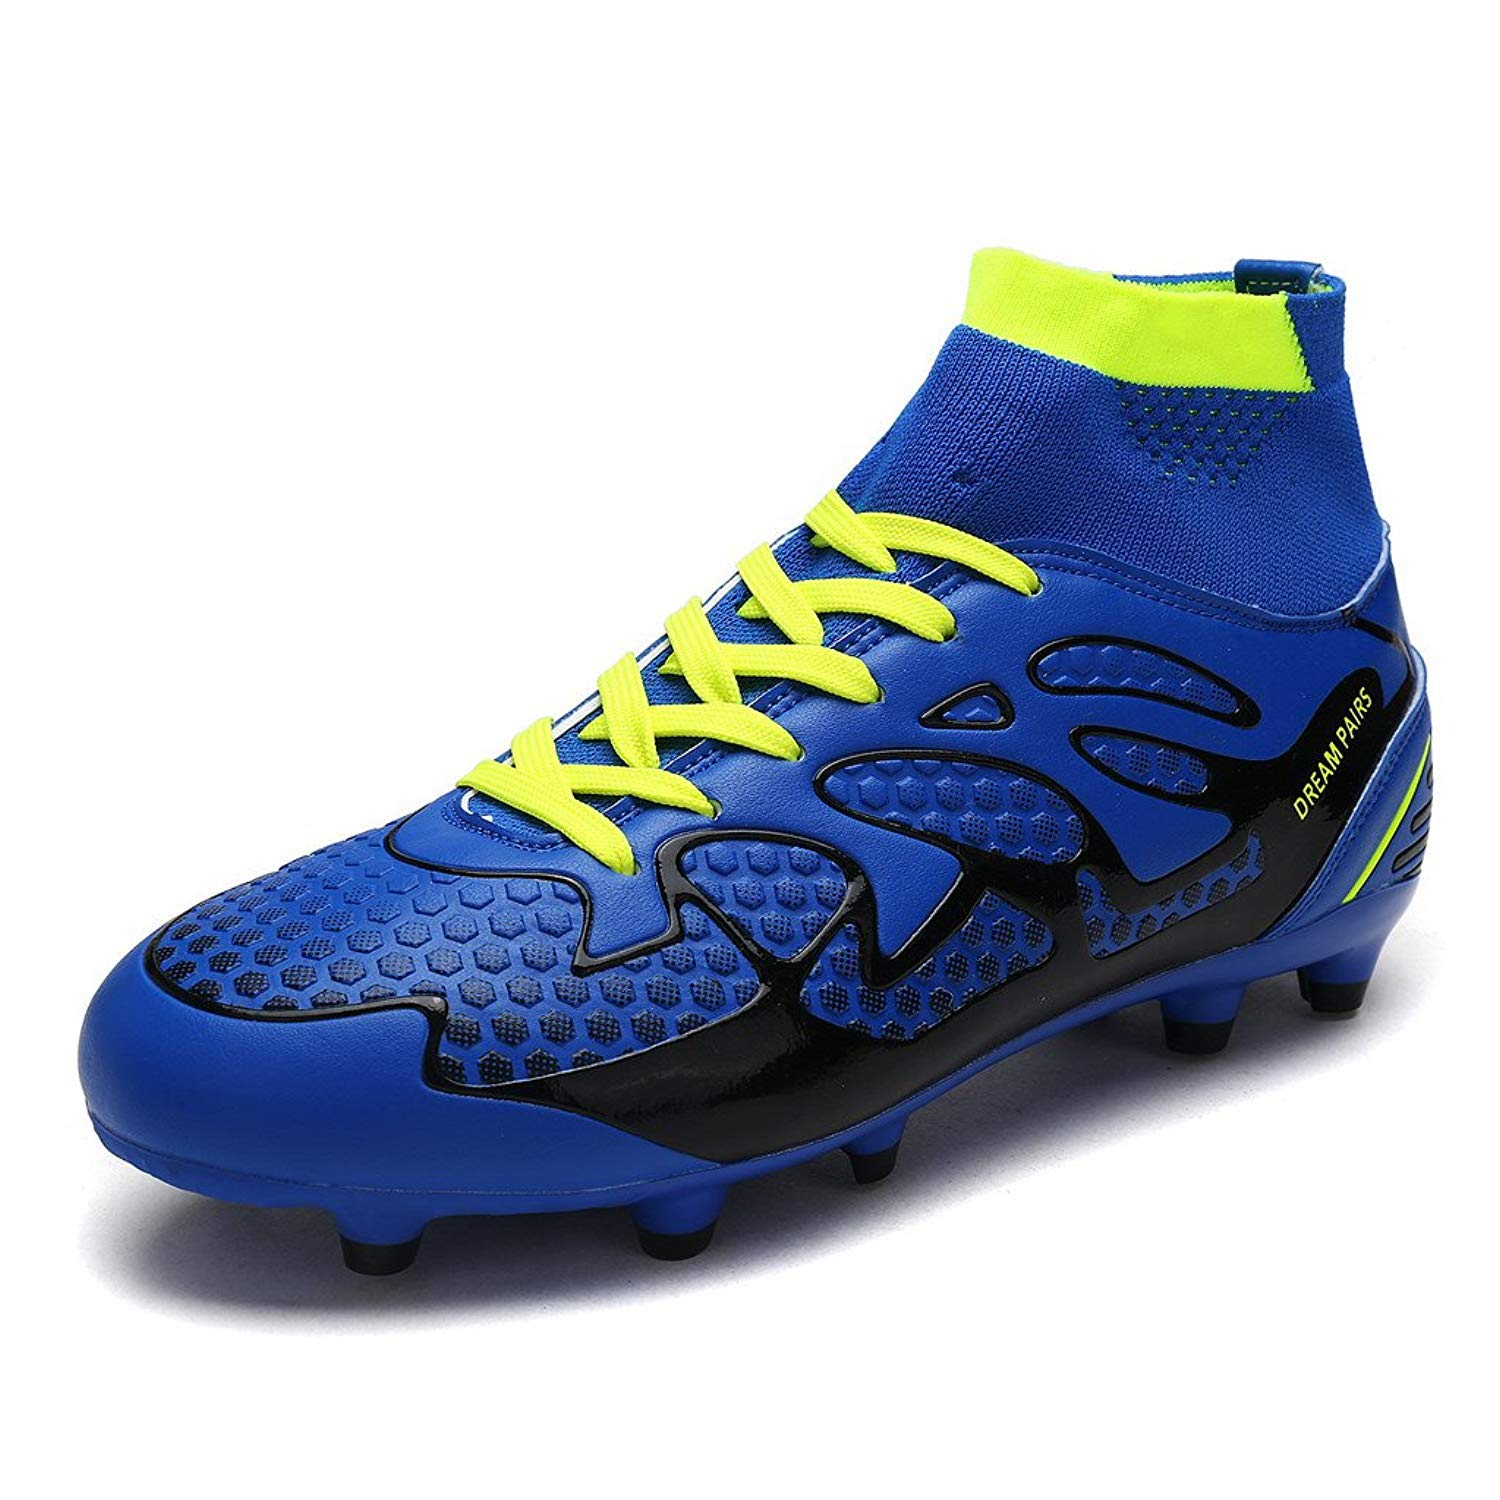 DREAM PAIRS Boys & Girls Toddler/Little Kid/Big Kid 160858-K Fashion Soccer Football Cleats Shoes